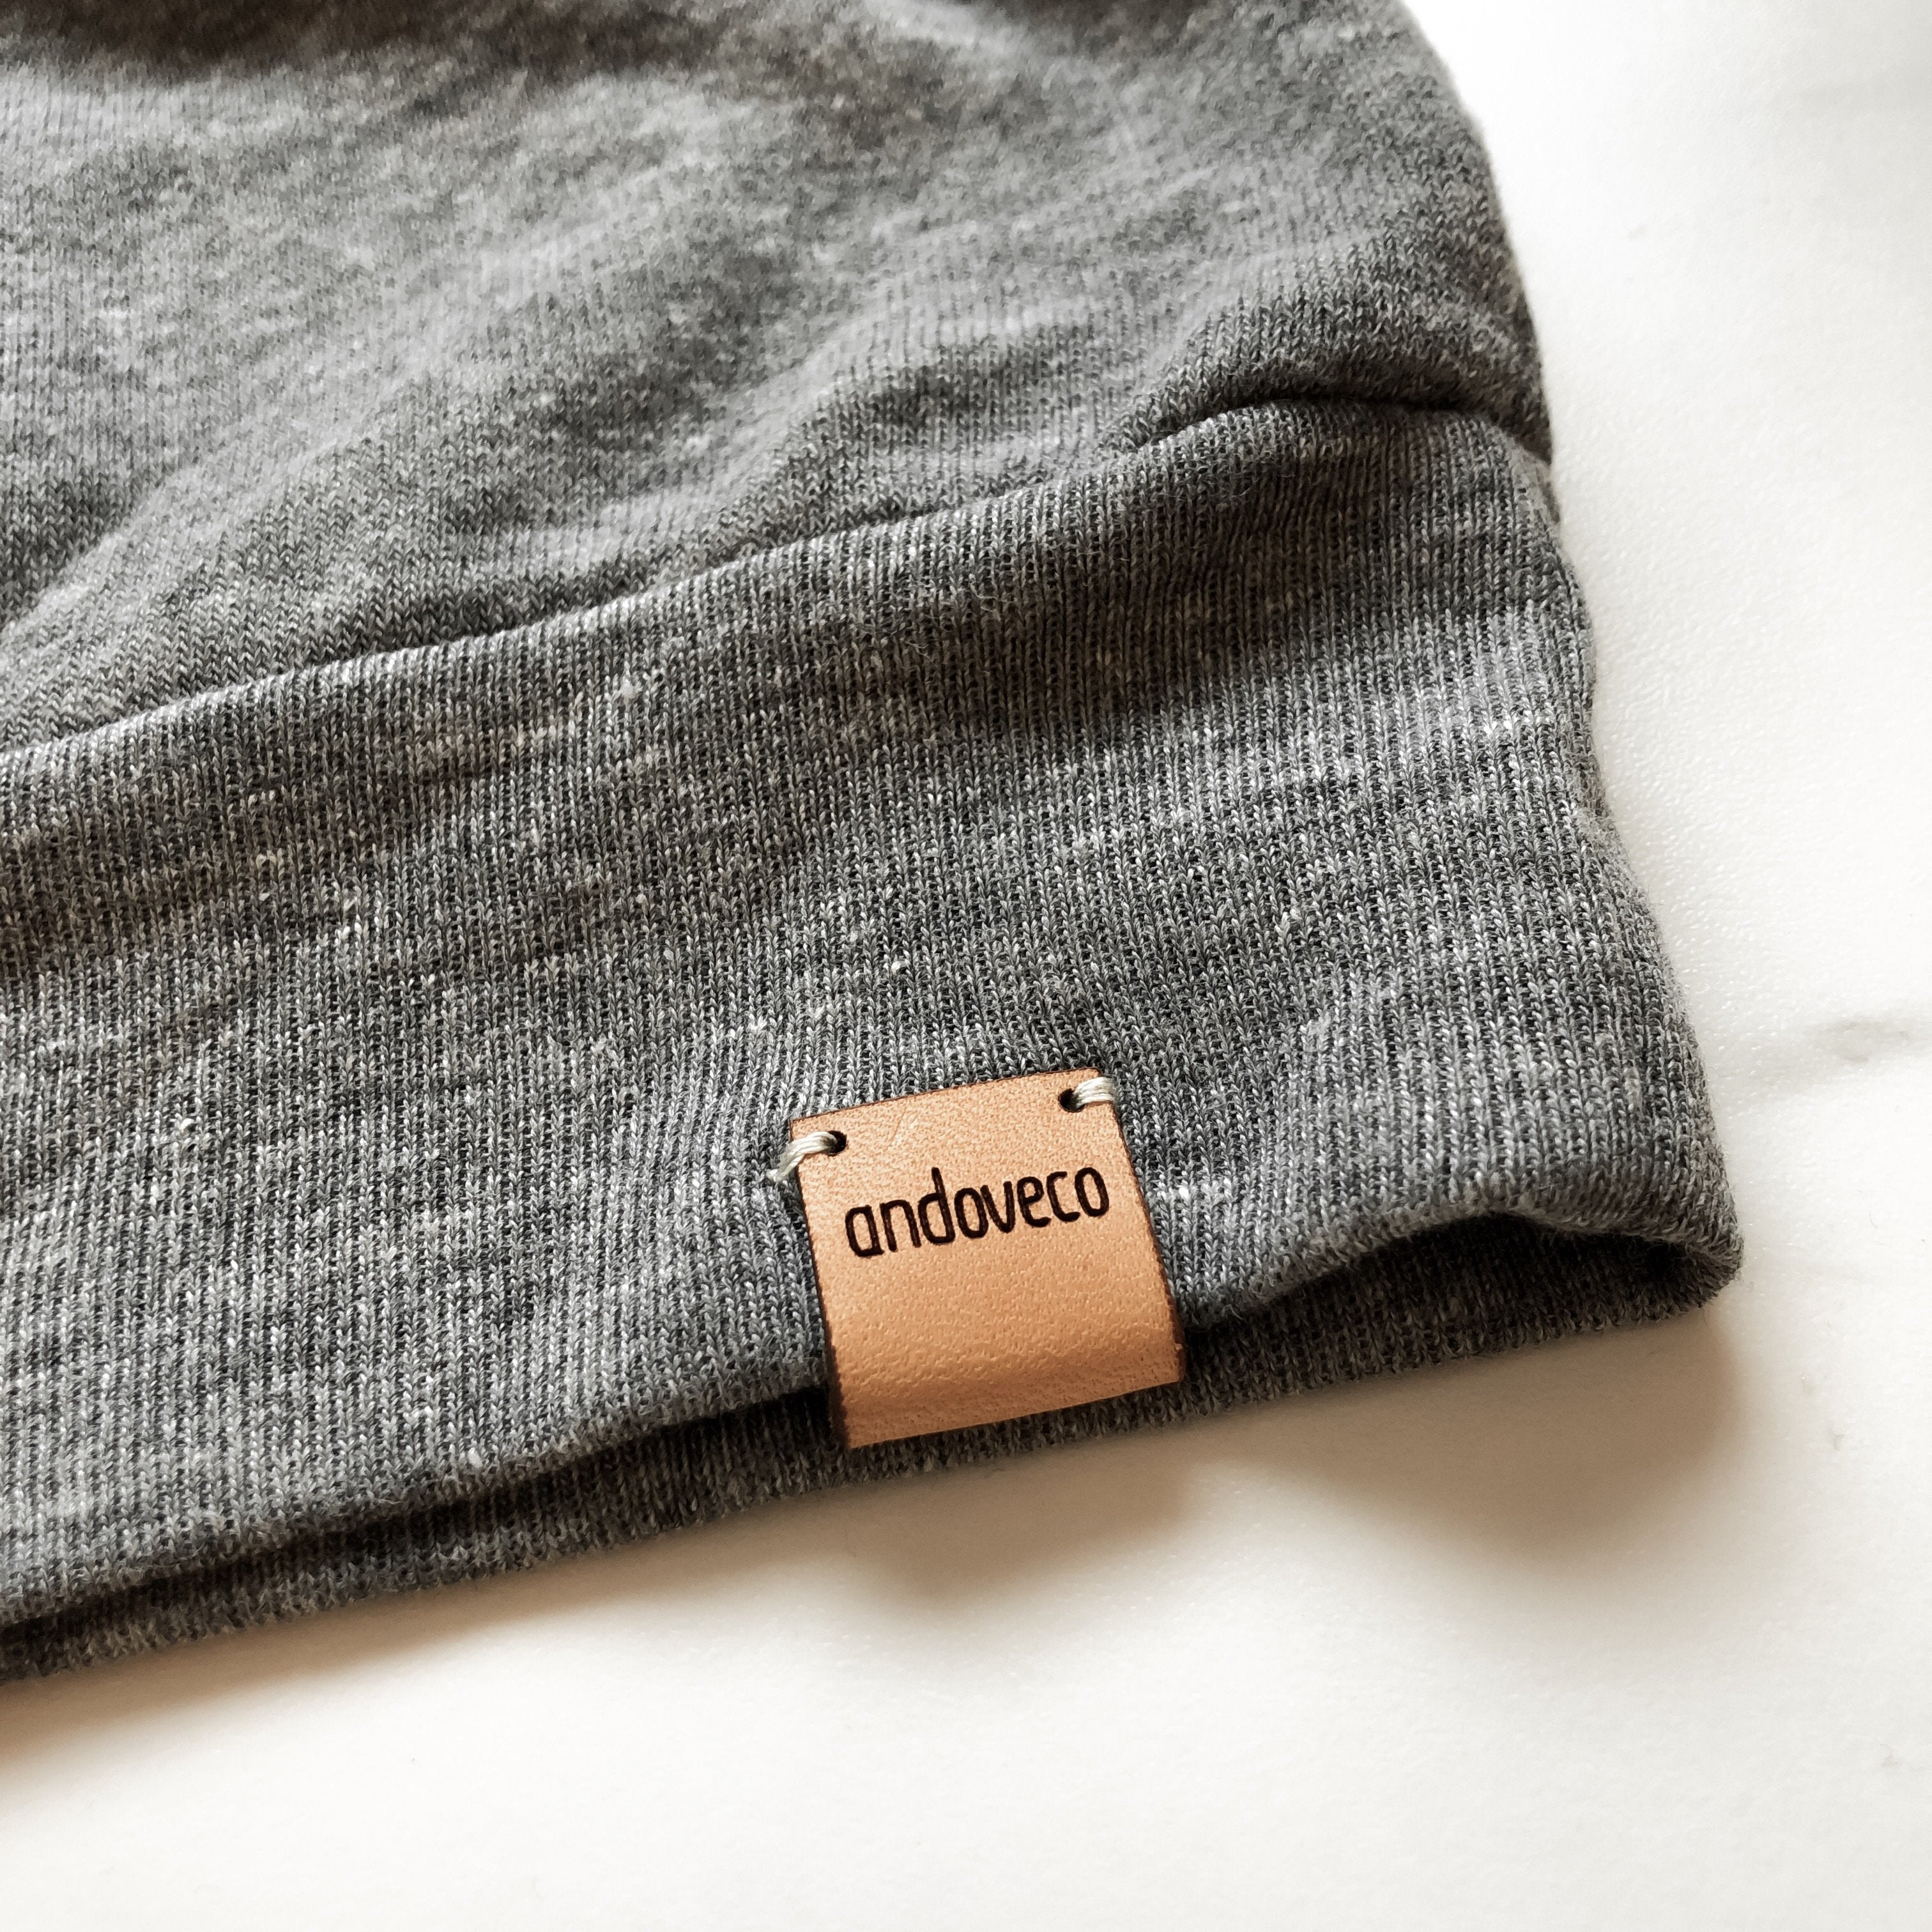 MOM Crewneck Sweater - andoveco